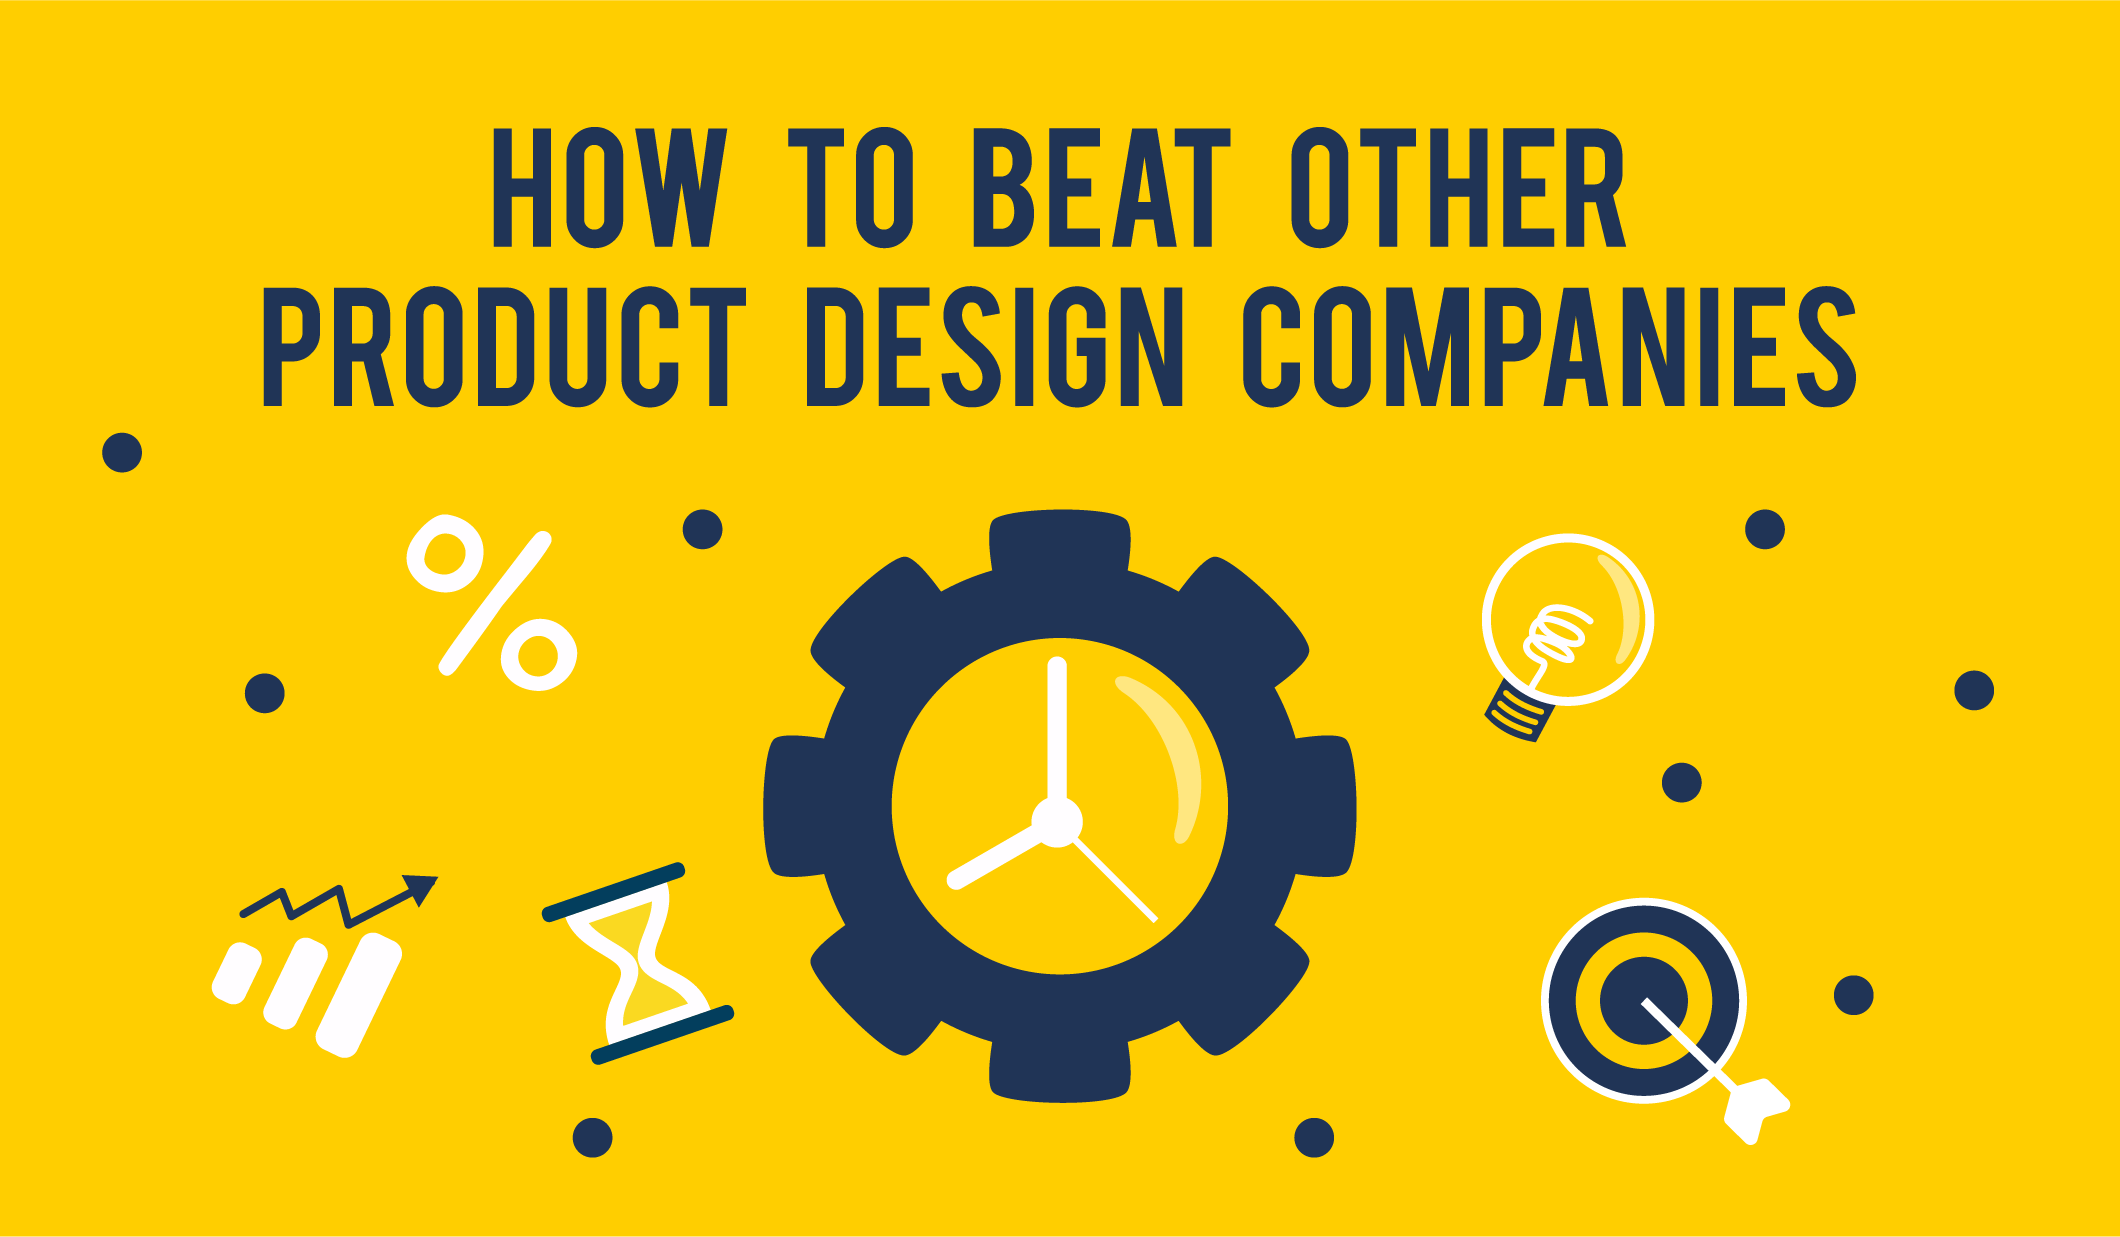 How to Beat Other Product Design Companies